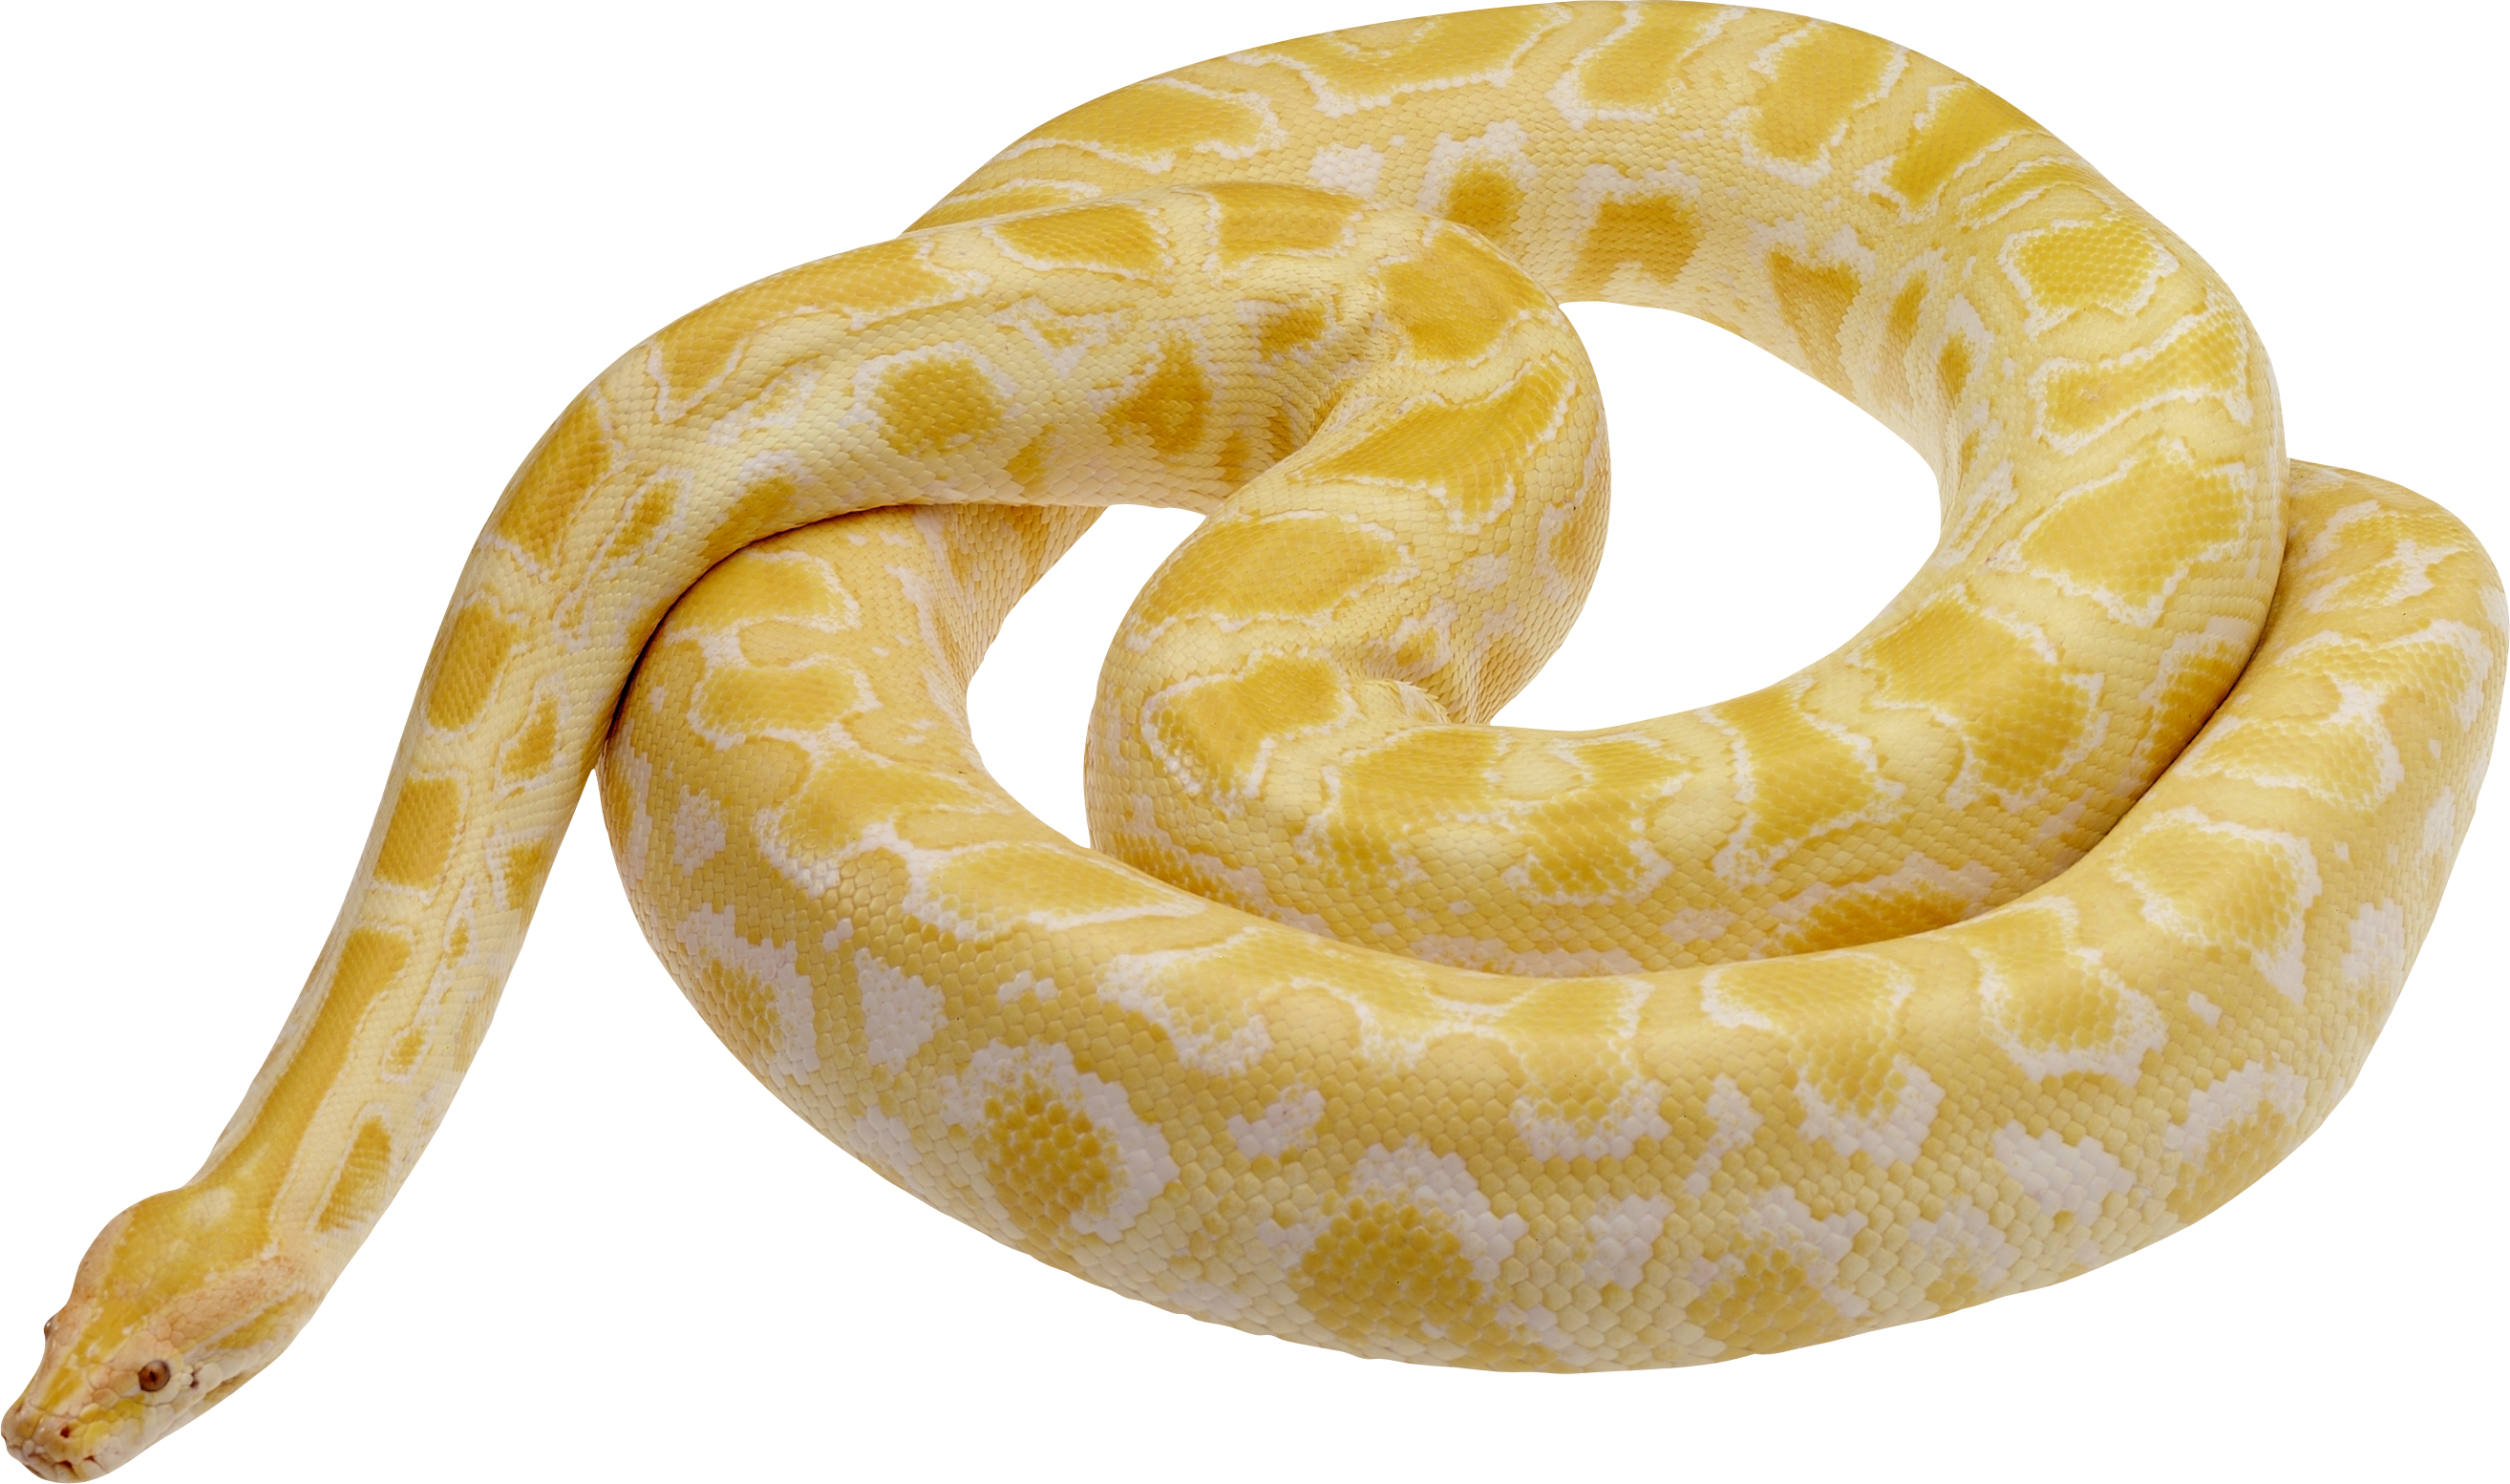 Snake clipart tiger snake. Photo transparentpng